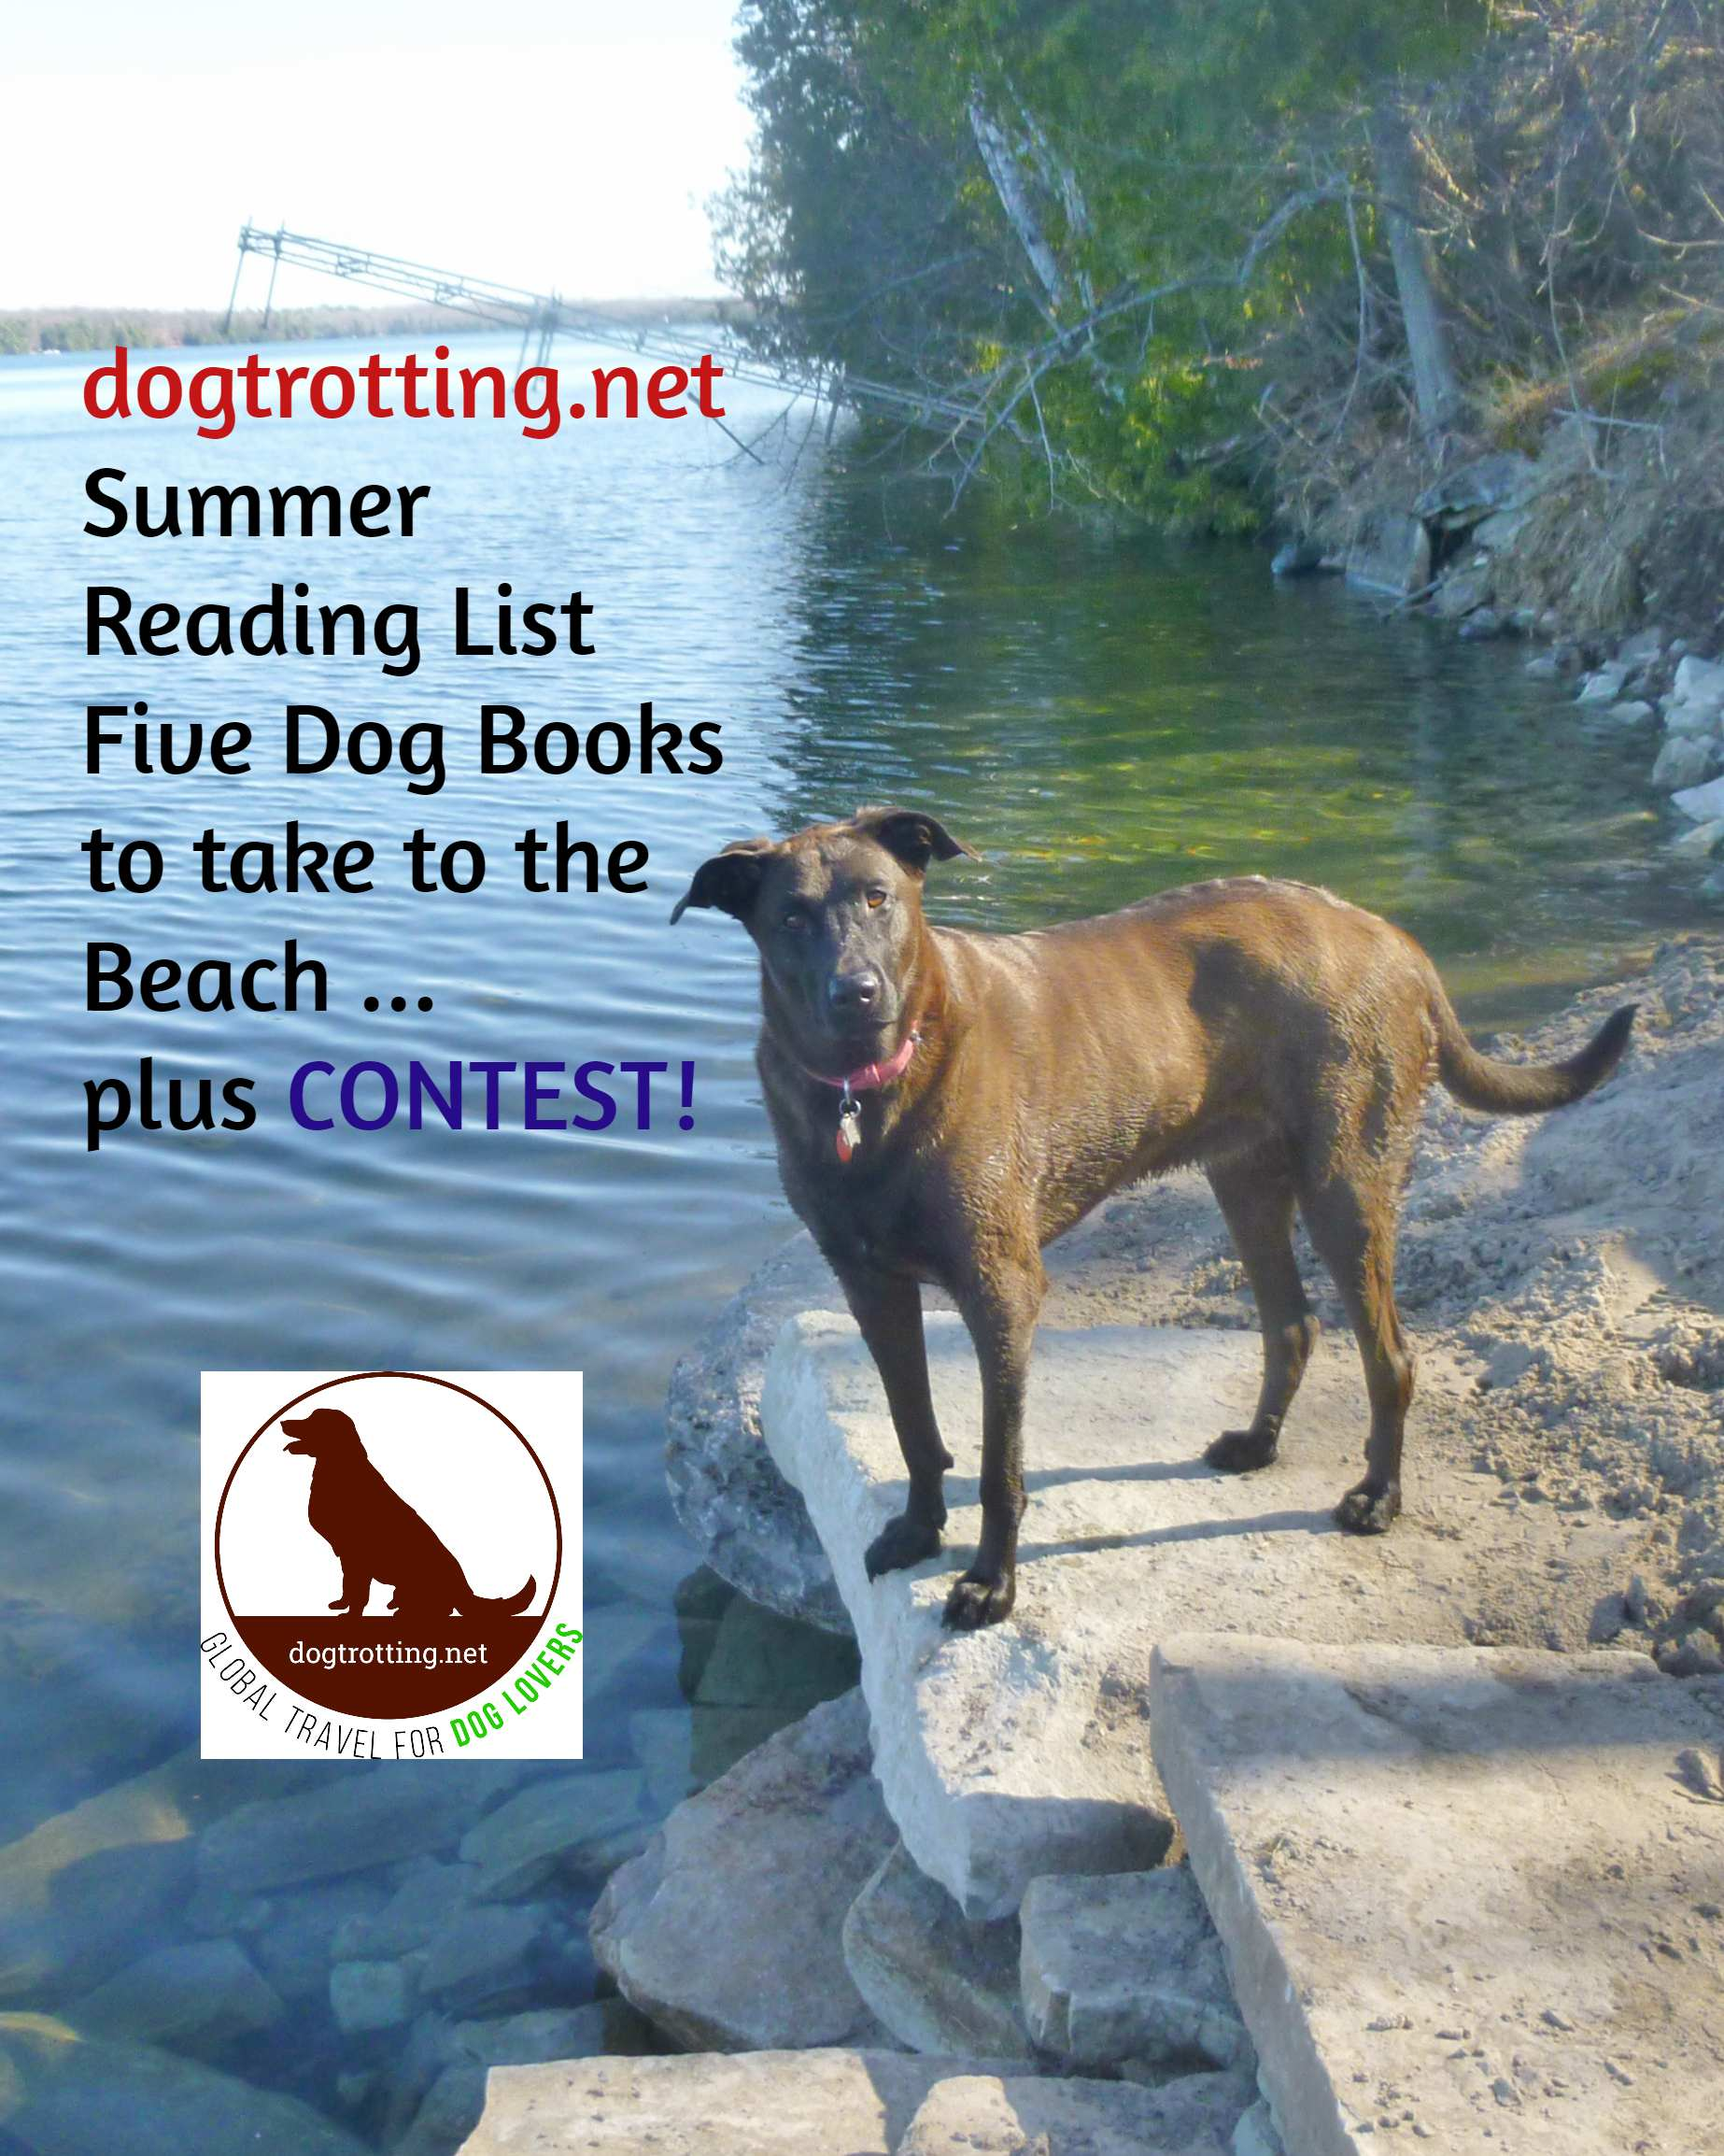 Contest! The Dog Books of Summer Reading List 2019